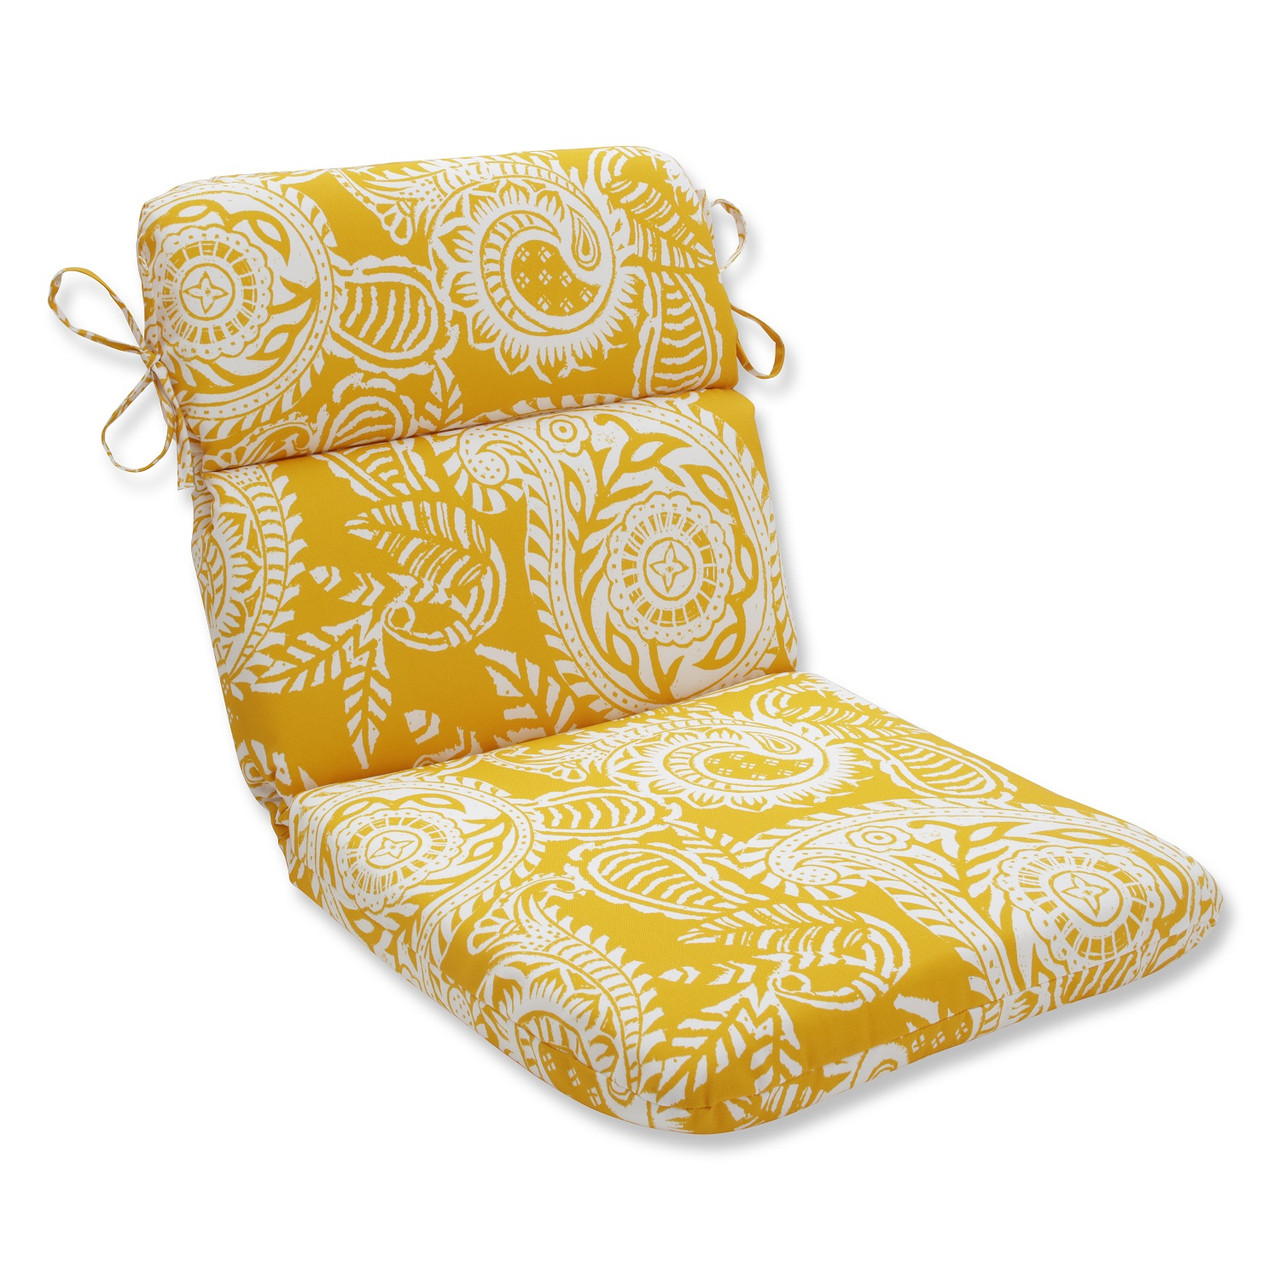 40 5 White Paisley Swirl Mustard Yellow Outdoor Patio Rounded Chair Cushion Christmas Central